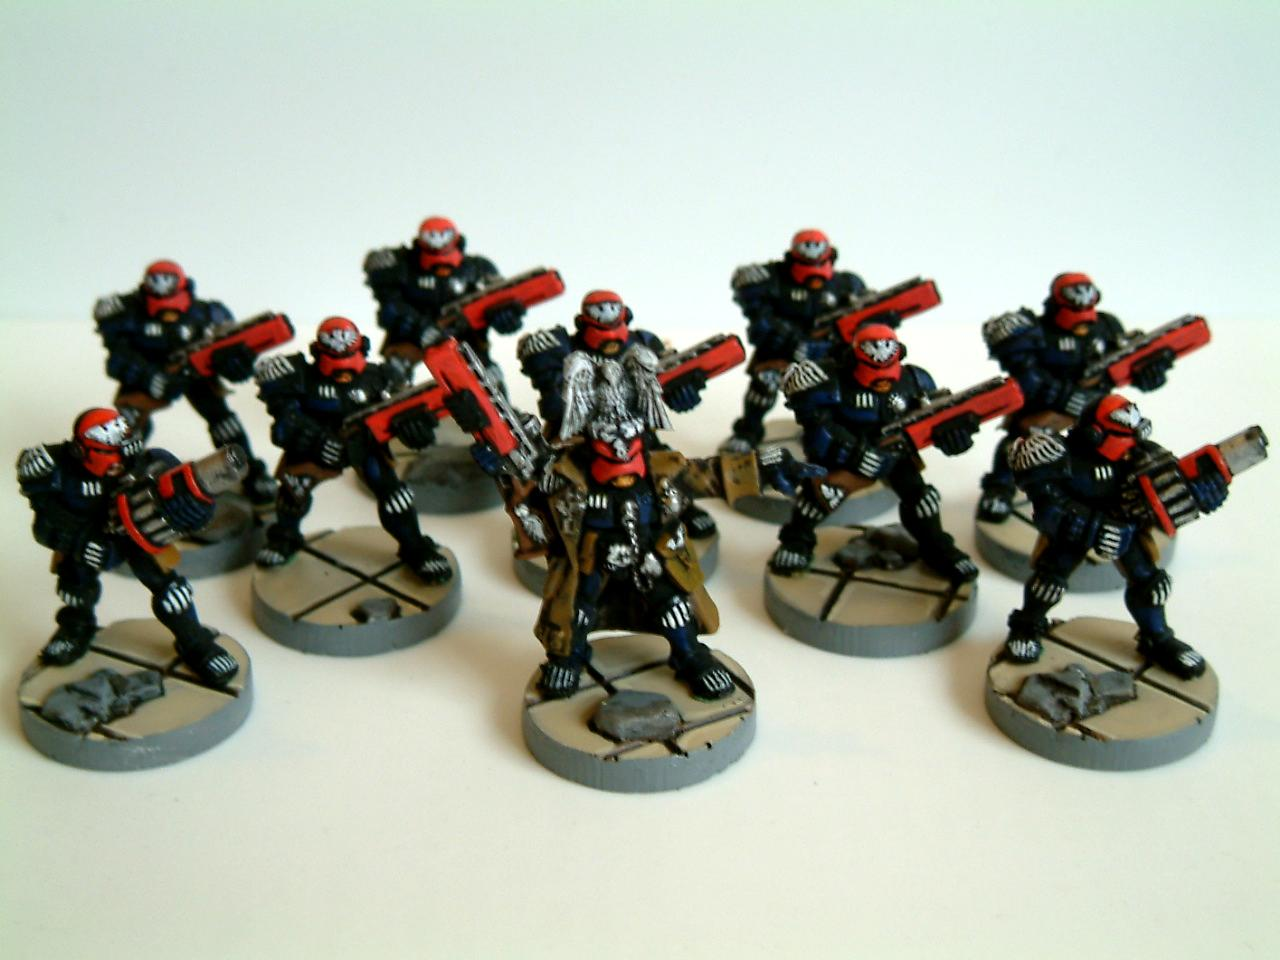 2ed, Adeptus, Adeptus Arbites, Arbite, Arbitor, Arbitrator, Arbitrators, Classic, Enforcer, Enforcers, Hunters, Imperial, Inquisitor, Judge, Judges, Necromunda, Out Of Production, Police, Storm Troopers, Warhammer 40,000, Witch, Witchunters